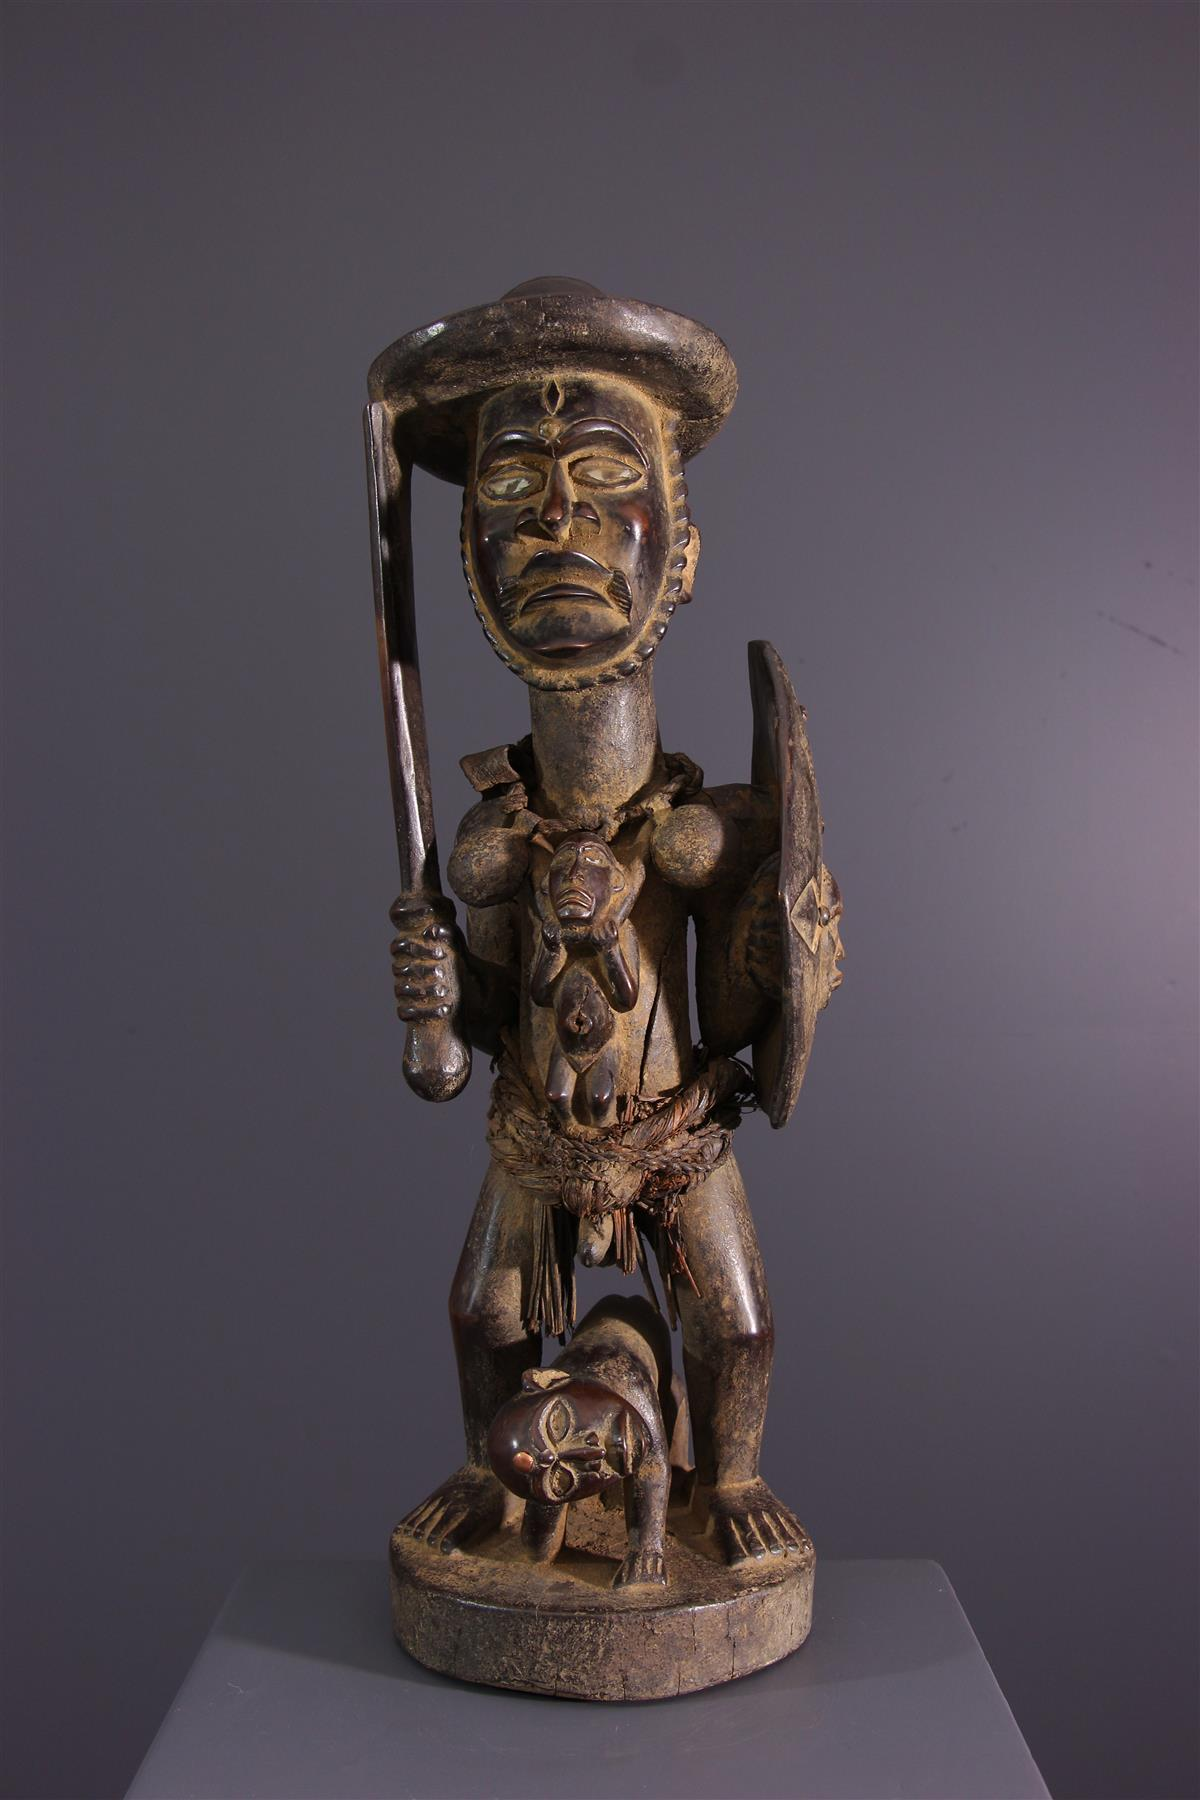 Statue of Congo - African art